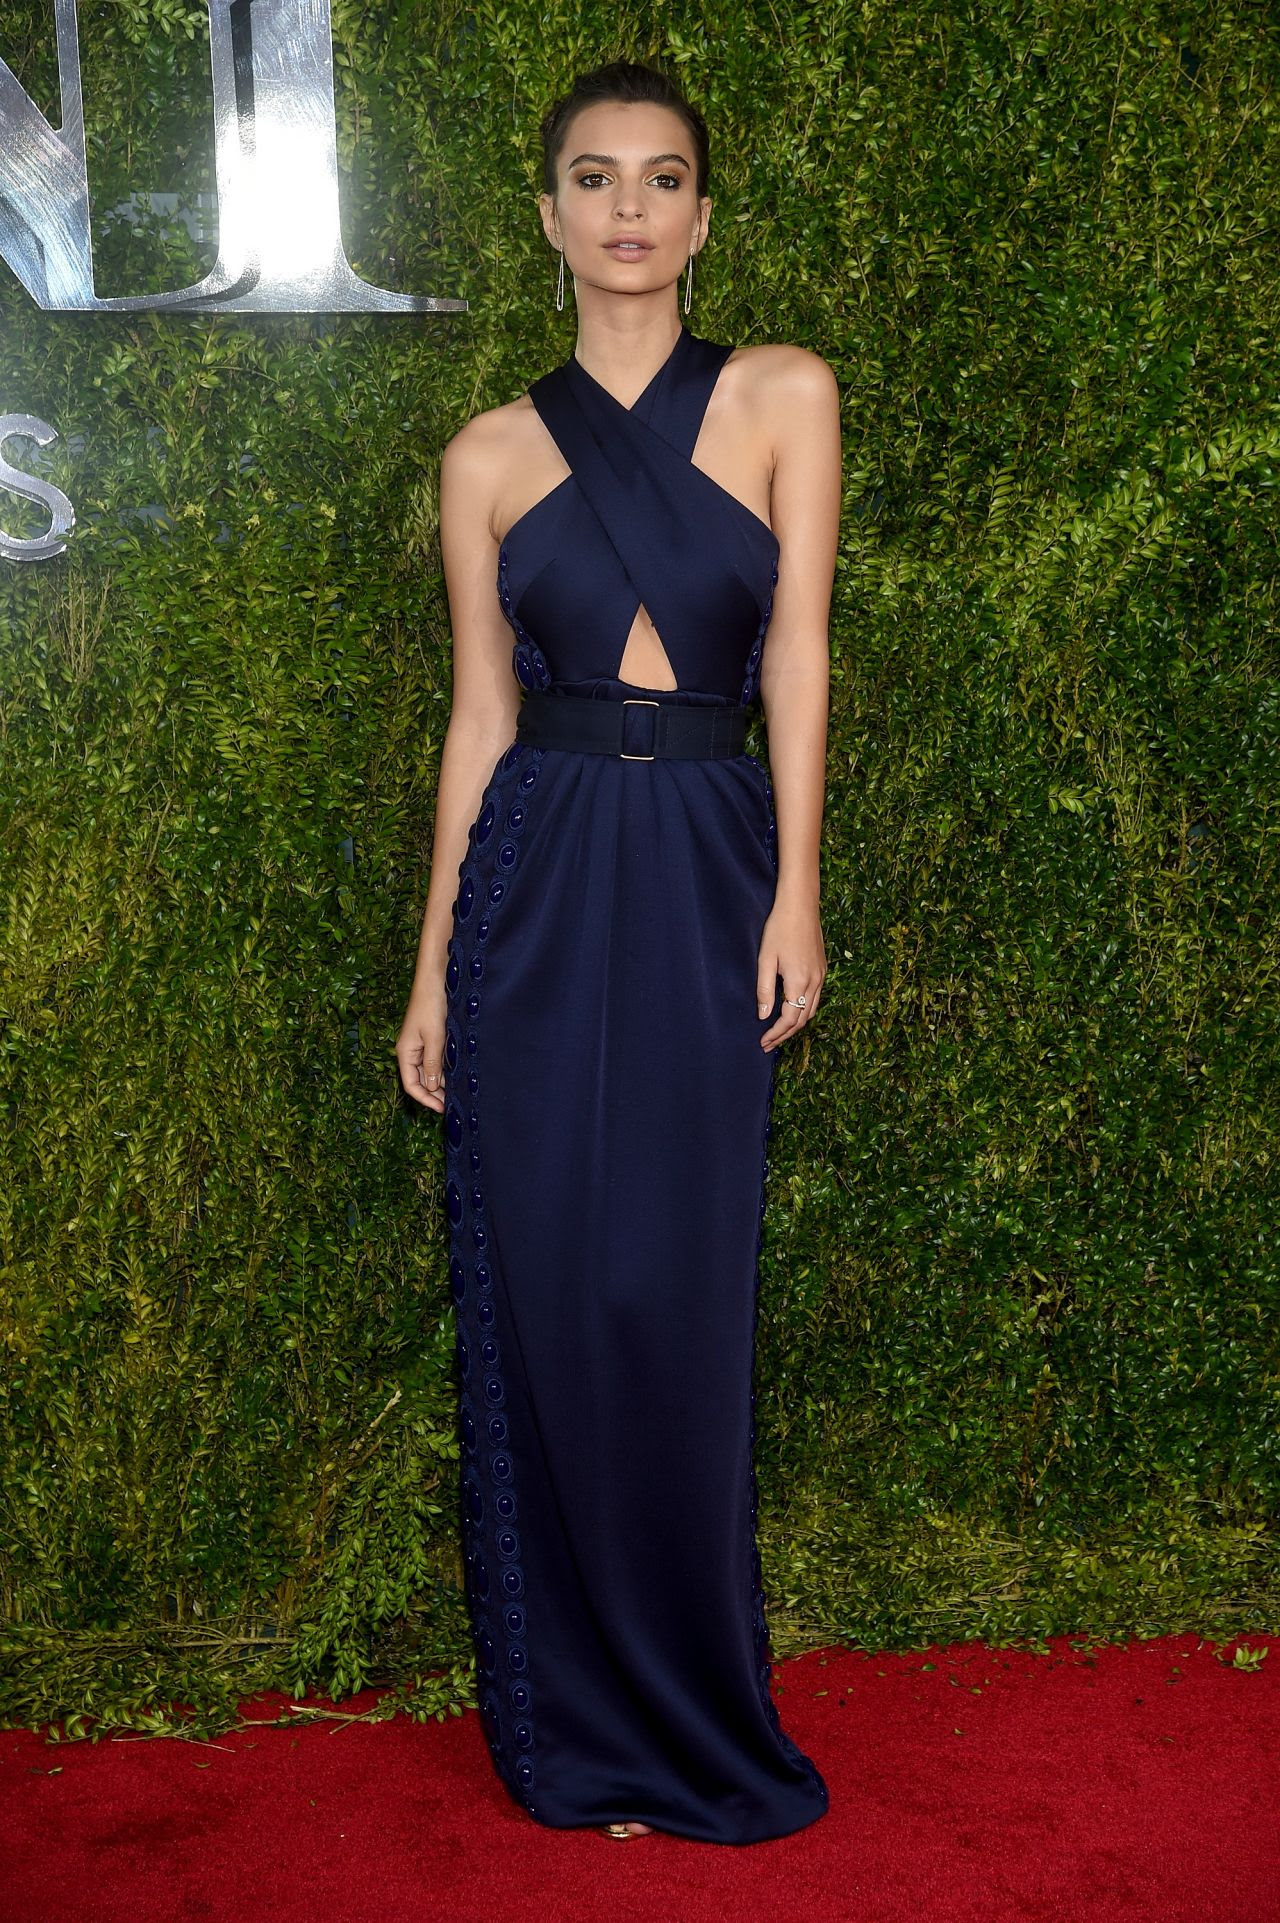 http://fashionsizzle.com/wp-content/uploads/2015/06/emily-ratajkowski-2015-tony-awards-in-new-york-city_4.jpg